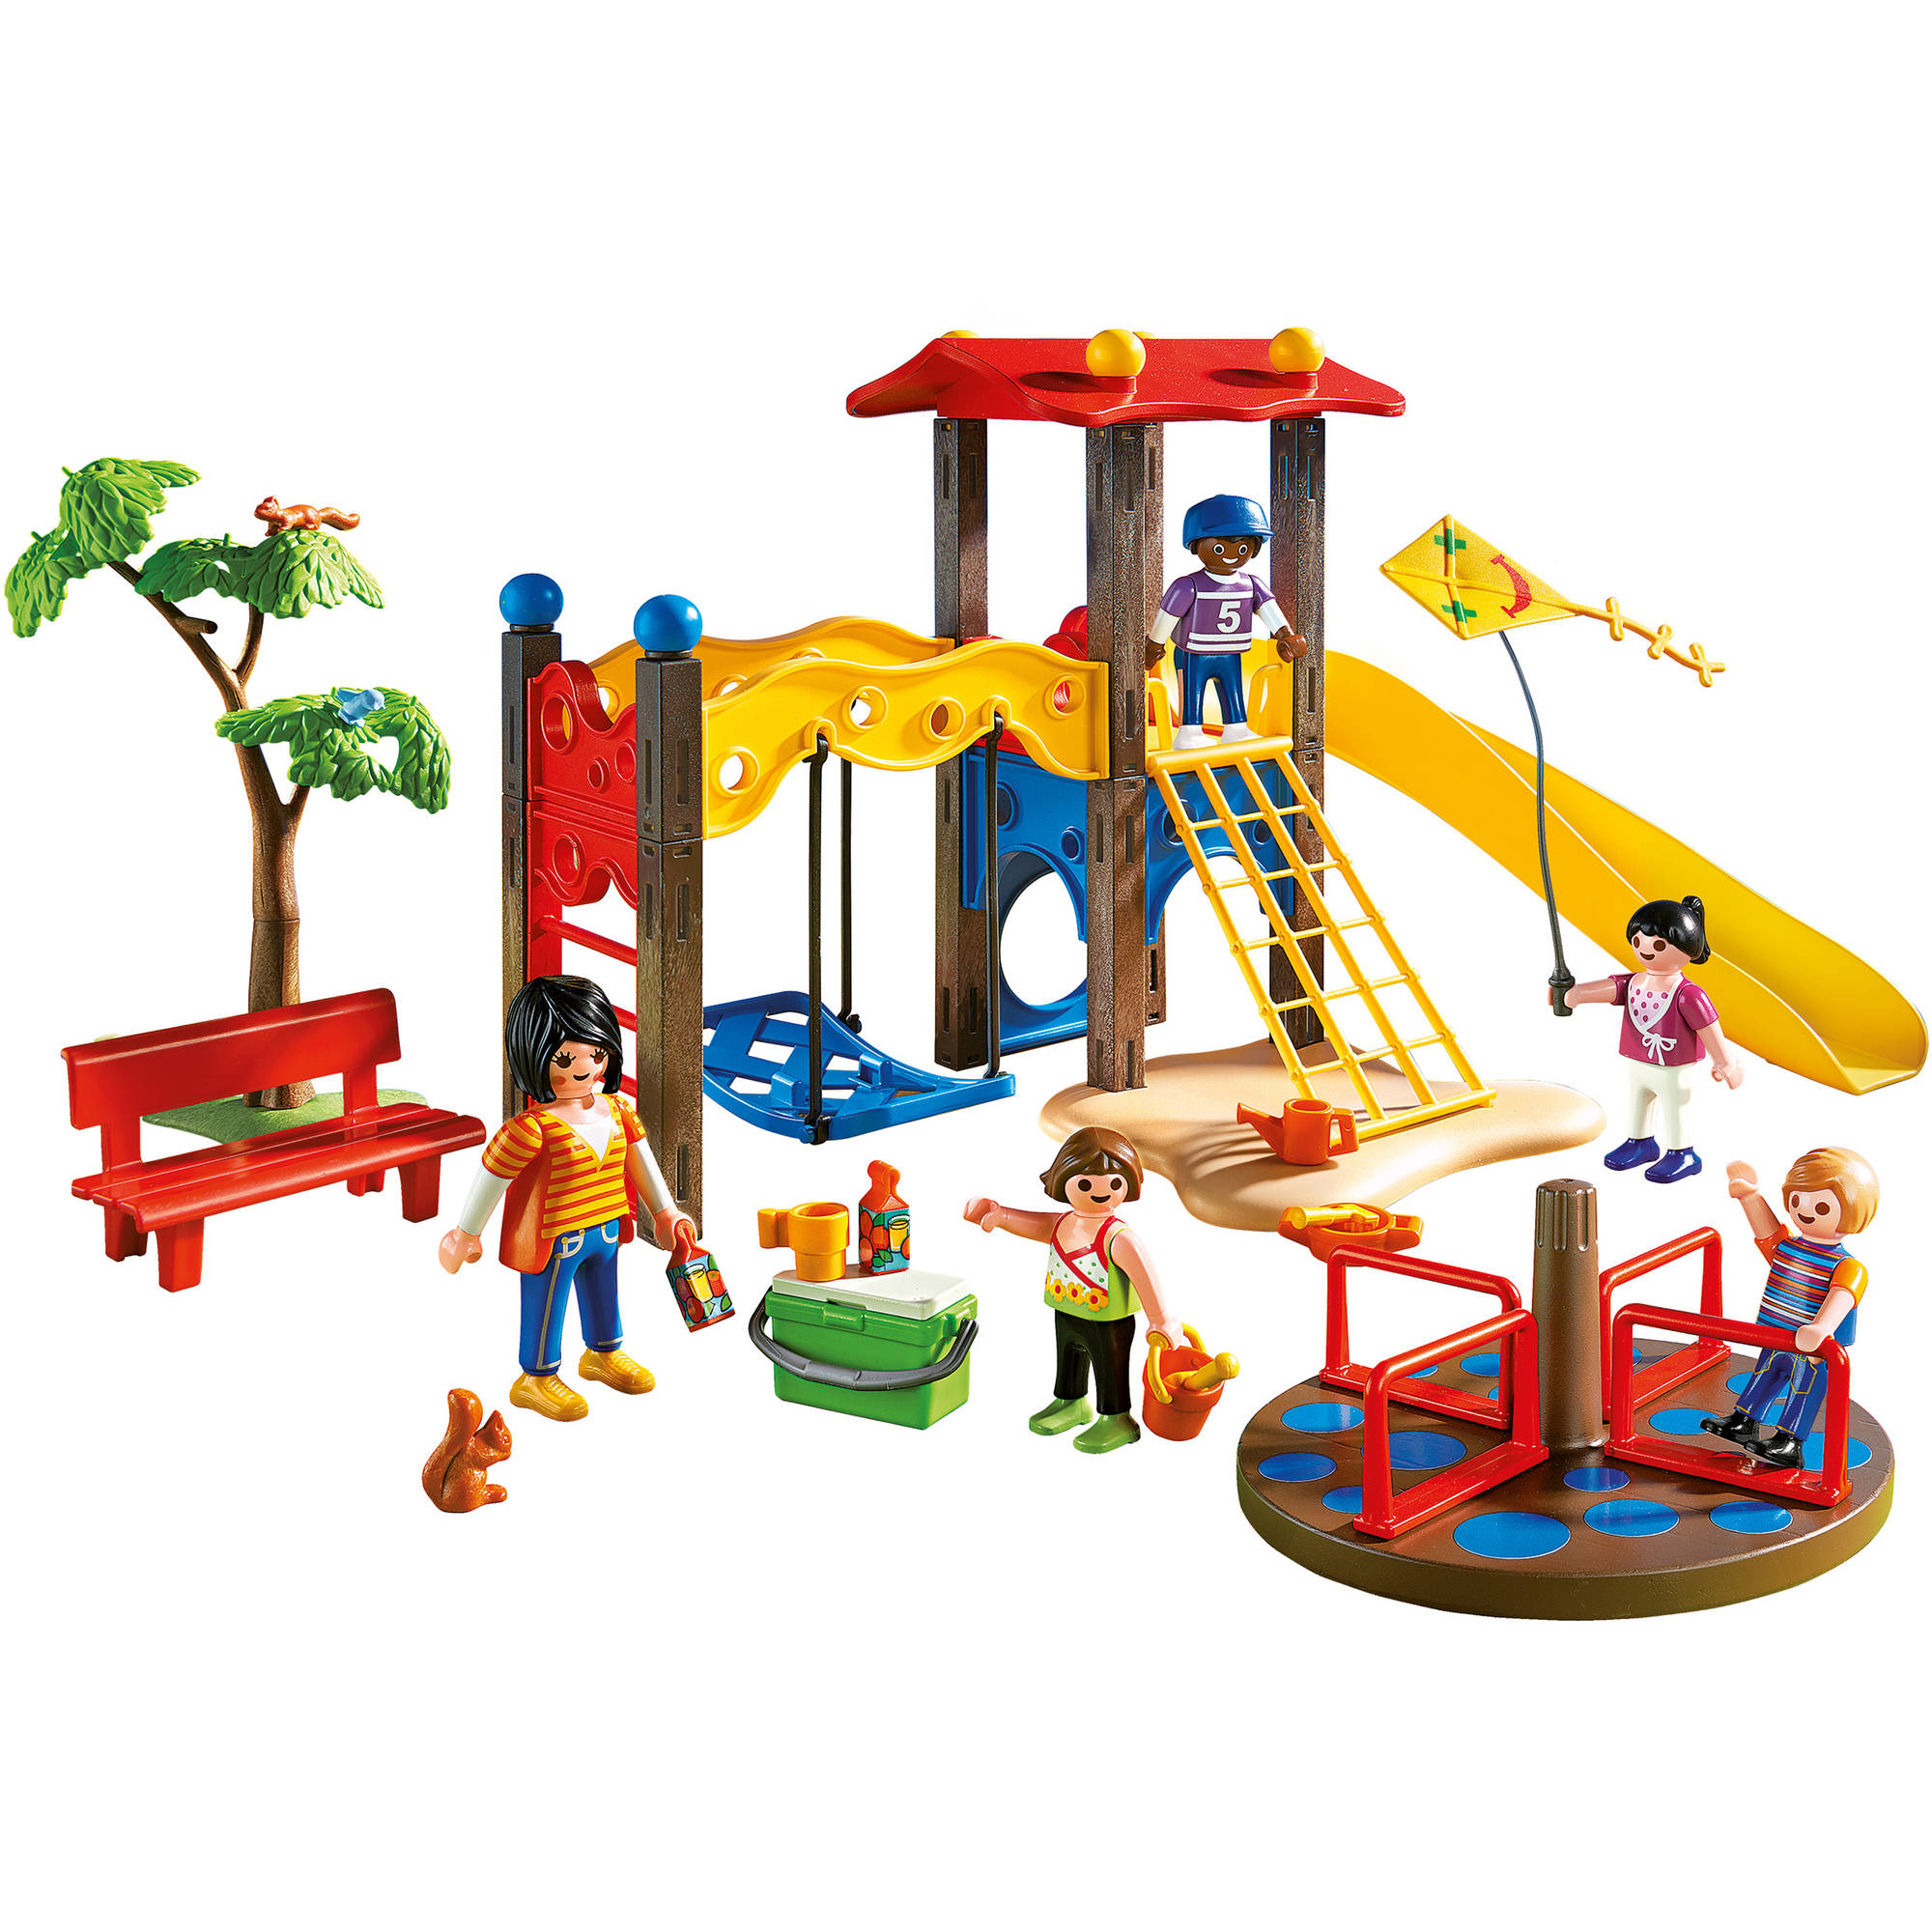 At Little Tikes Commercial, we know outdoor play is essential to the development of all children, which is why our play structures encourage children to explore the world around them and learn fundamental lessons through imagination, adventure and play. Our commercial playground equipment is designed with safety and durability in mind, so you always know that you will receive the highest.